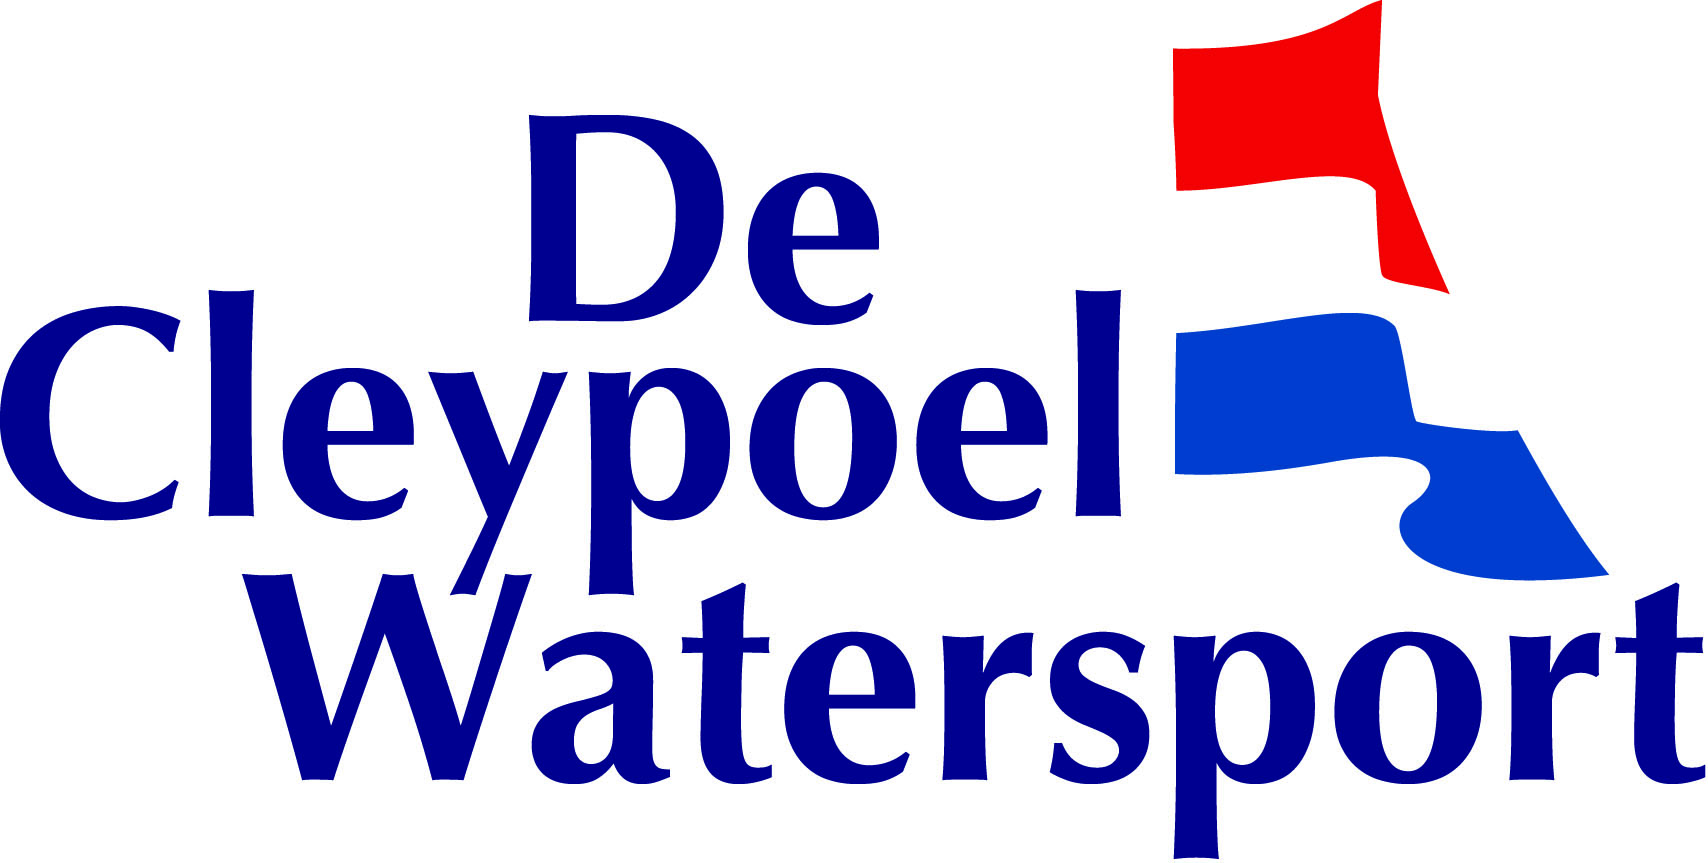 De Cleypoel Watersport